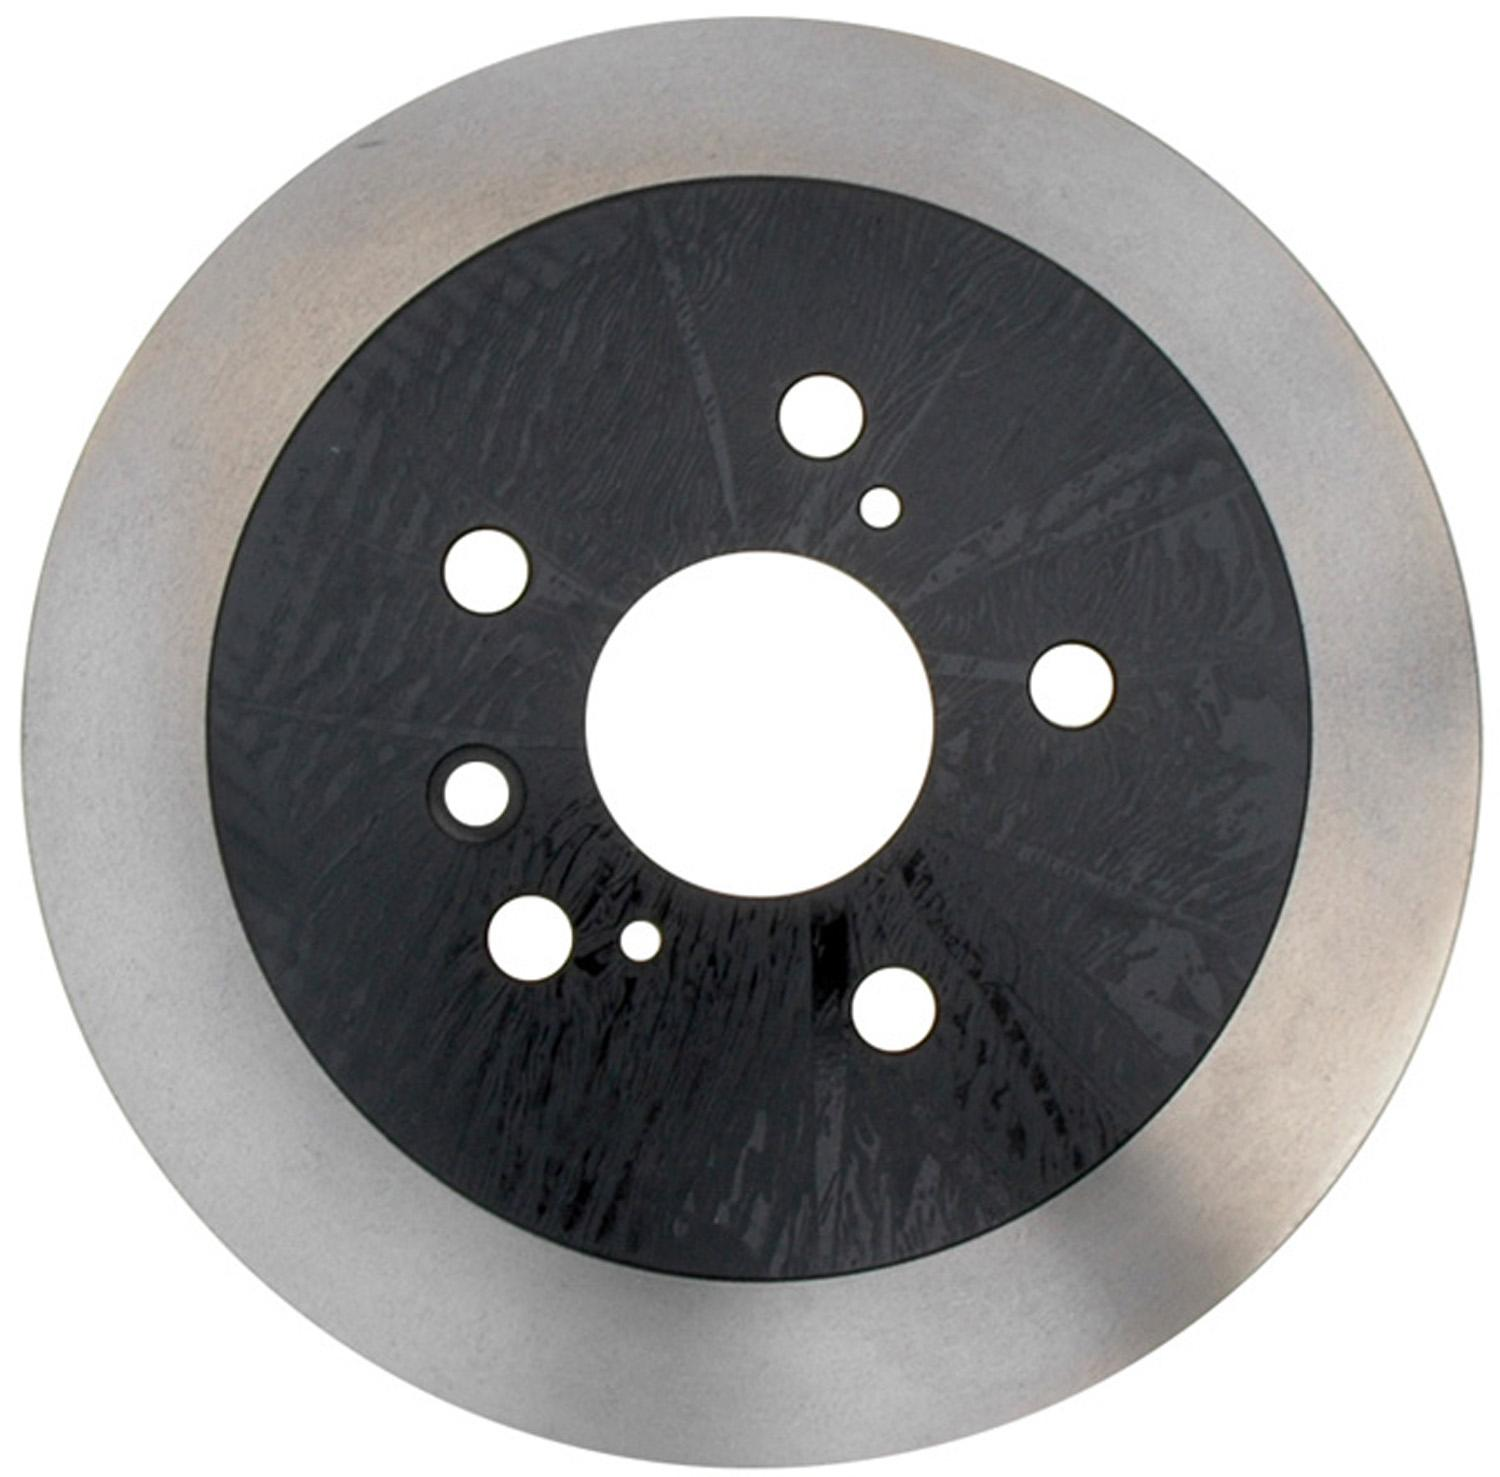 ACDELCO PROFESSIONAL BRAKES - Disc Brake Rotor (Rear) - ADU 18A1681